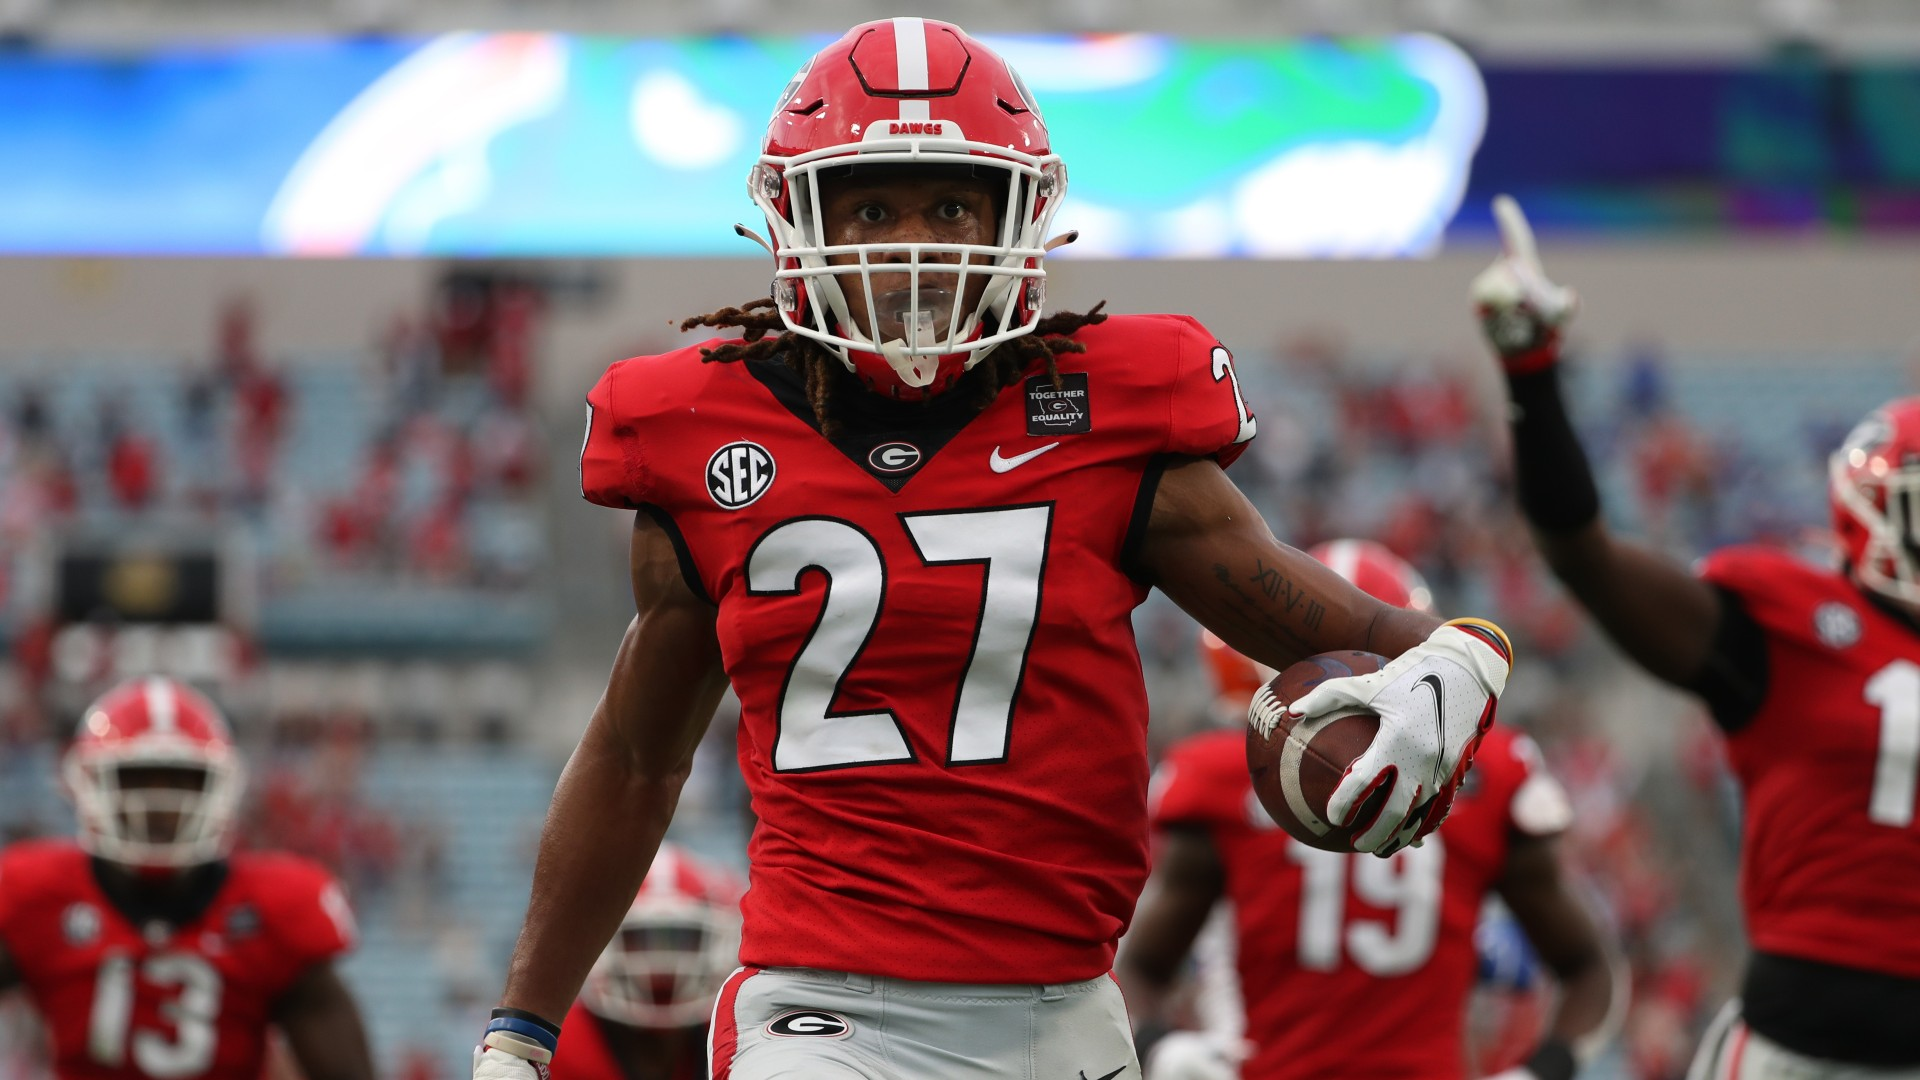 2020 College Football Rankings: AP Top 25 Poll vs. Our Betting Power Ratings For Week 11 article feature image